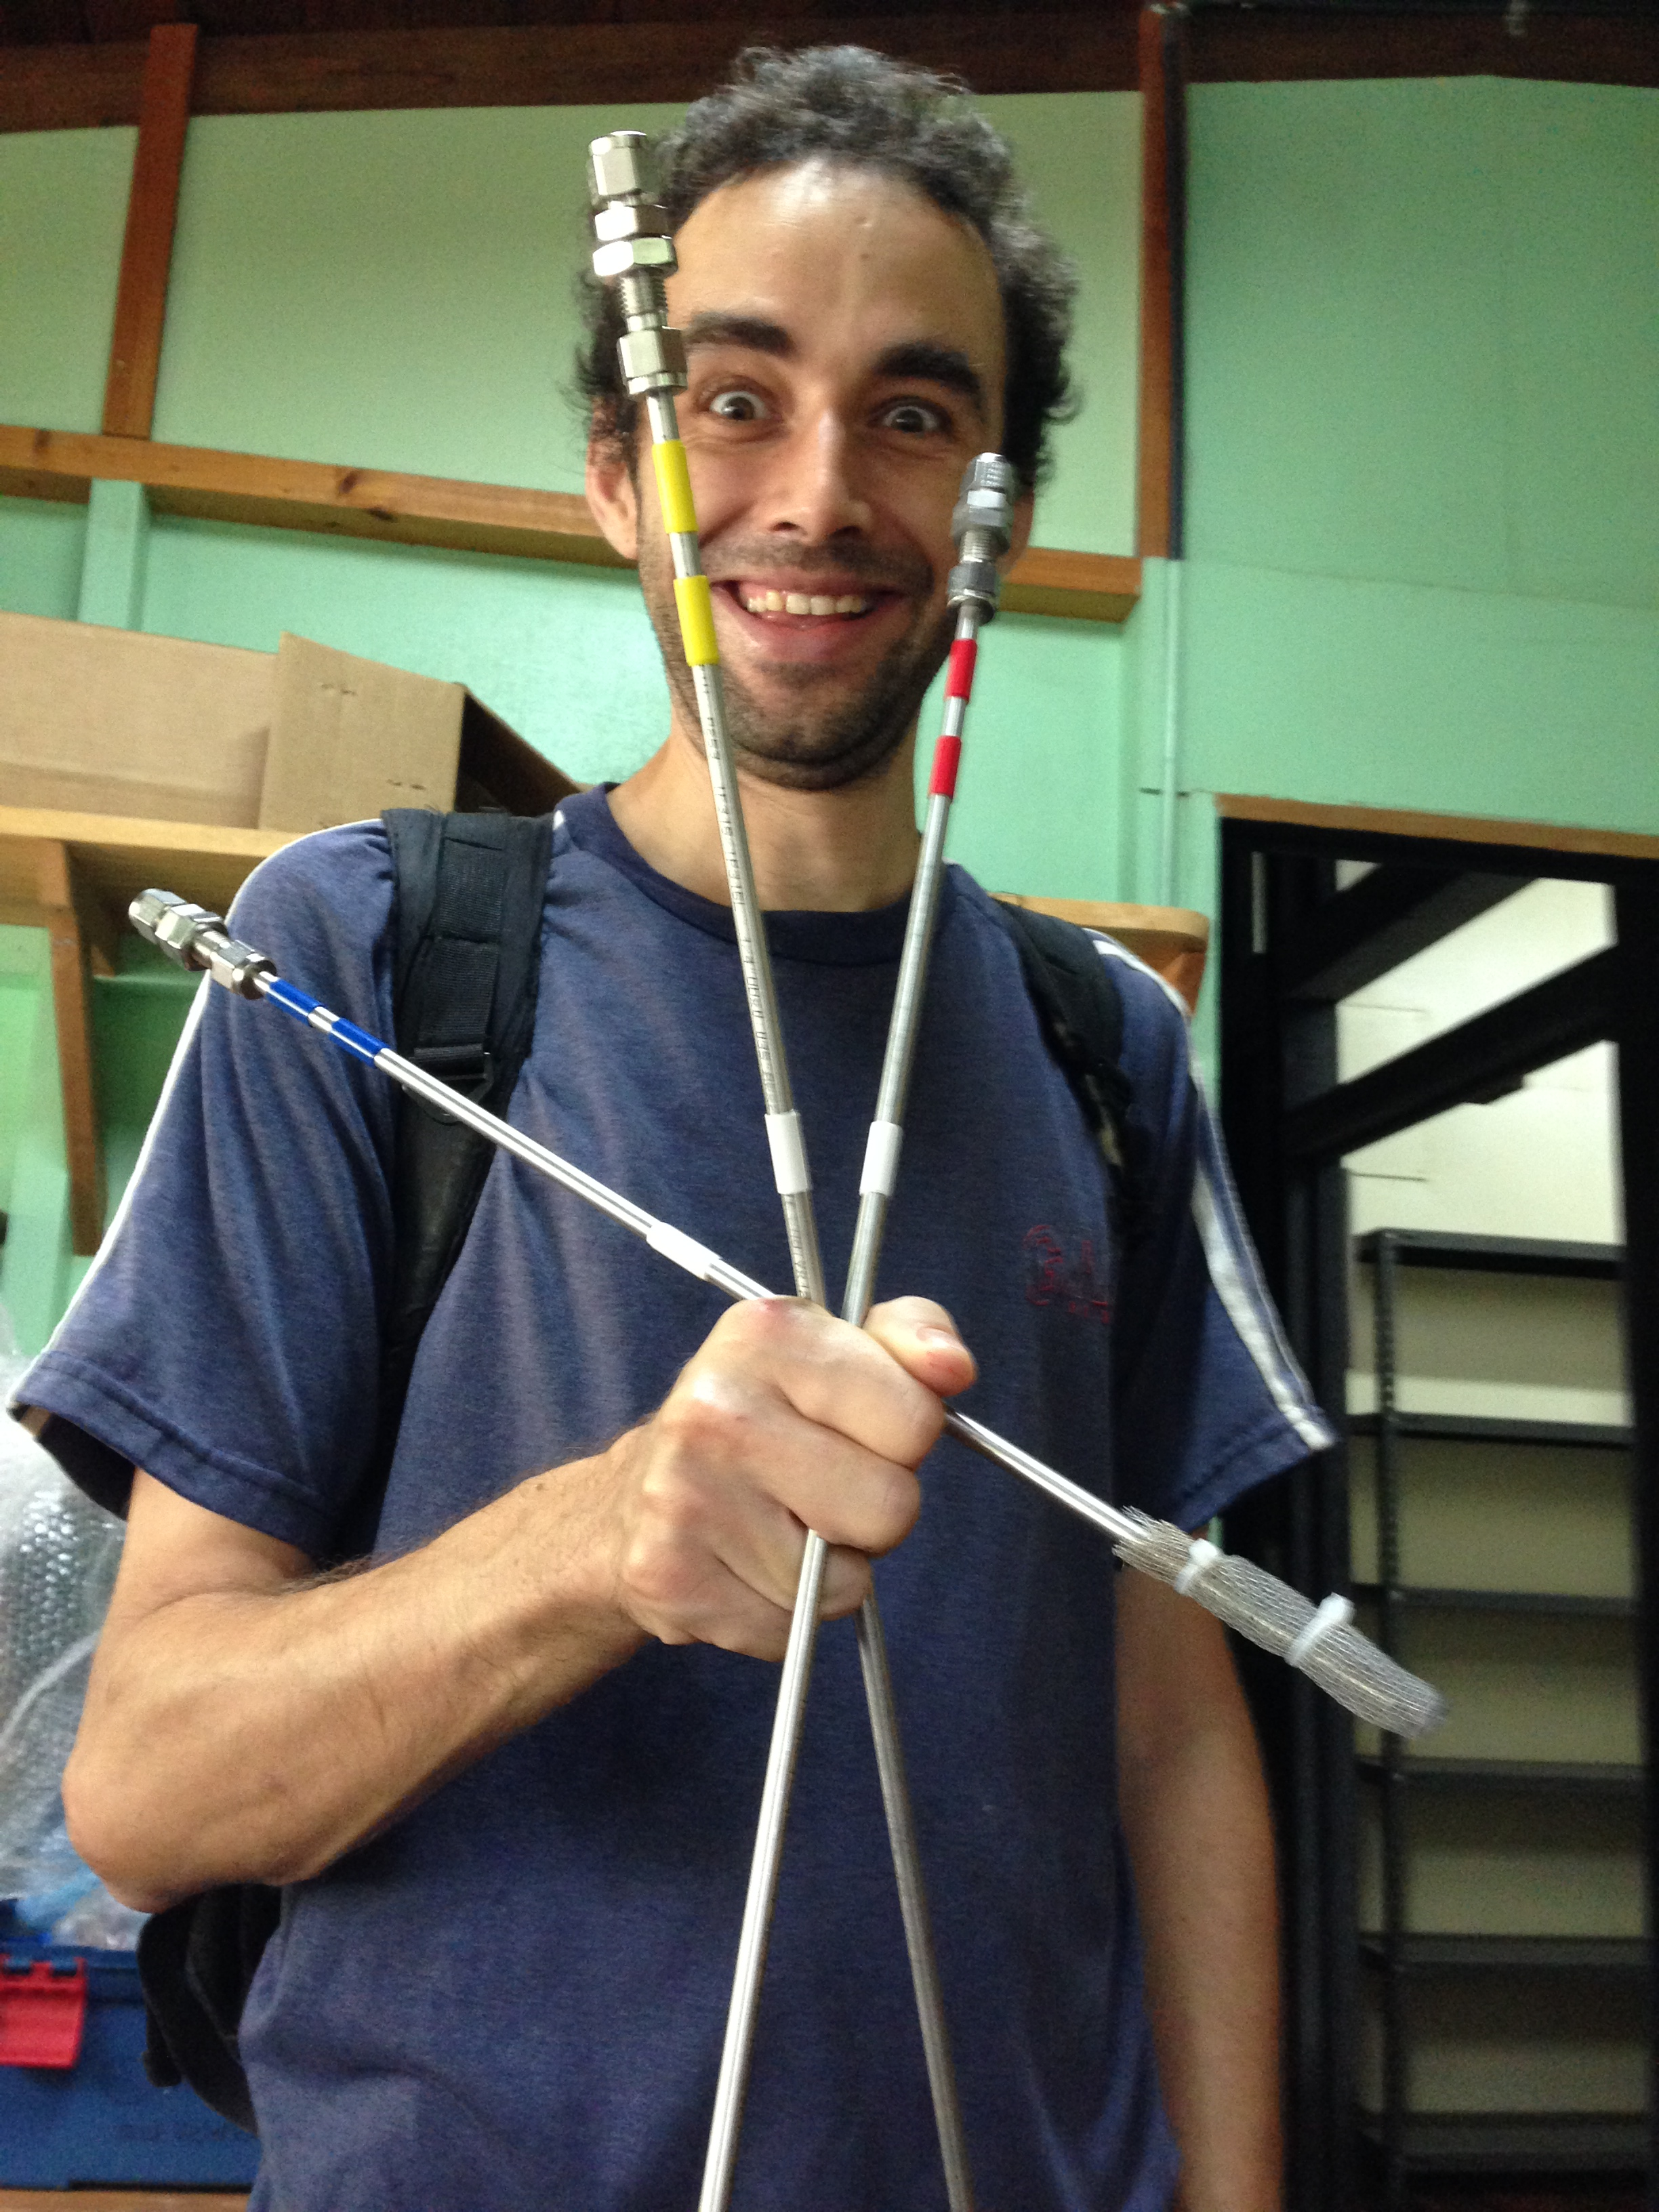 Dr. Diego Dierick, Florida International University  Diego is our man on the ground. He is the project McGyver, capable of fashioning a functioning soil respiration system to rival any LiCor set up using just a couple of Heliconia leaves, some string, and used bicycle tires. He is interested in everything!